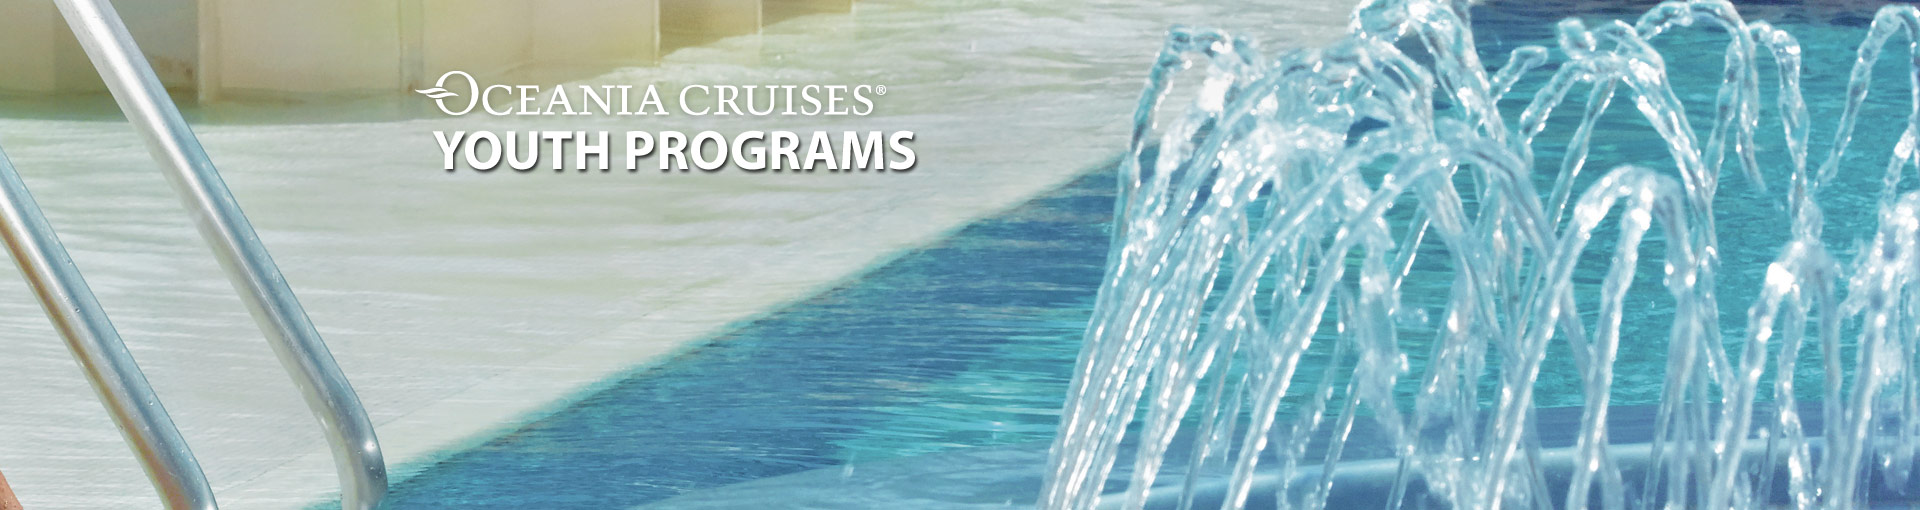 Oceania Cruises Youth Programs